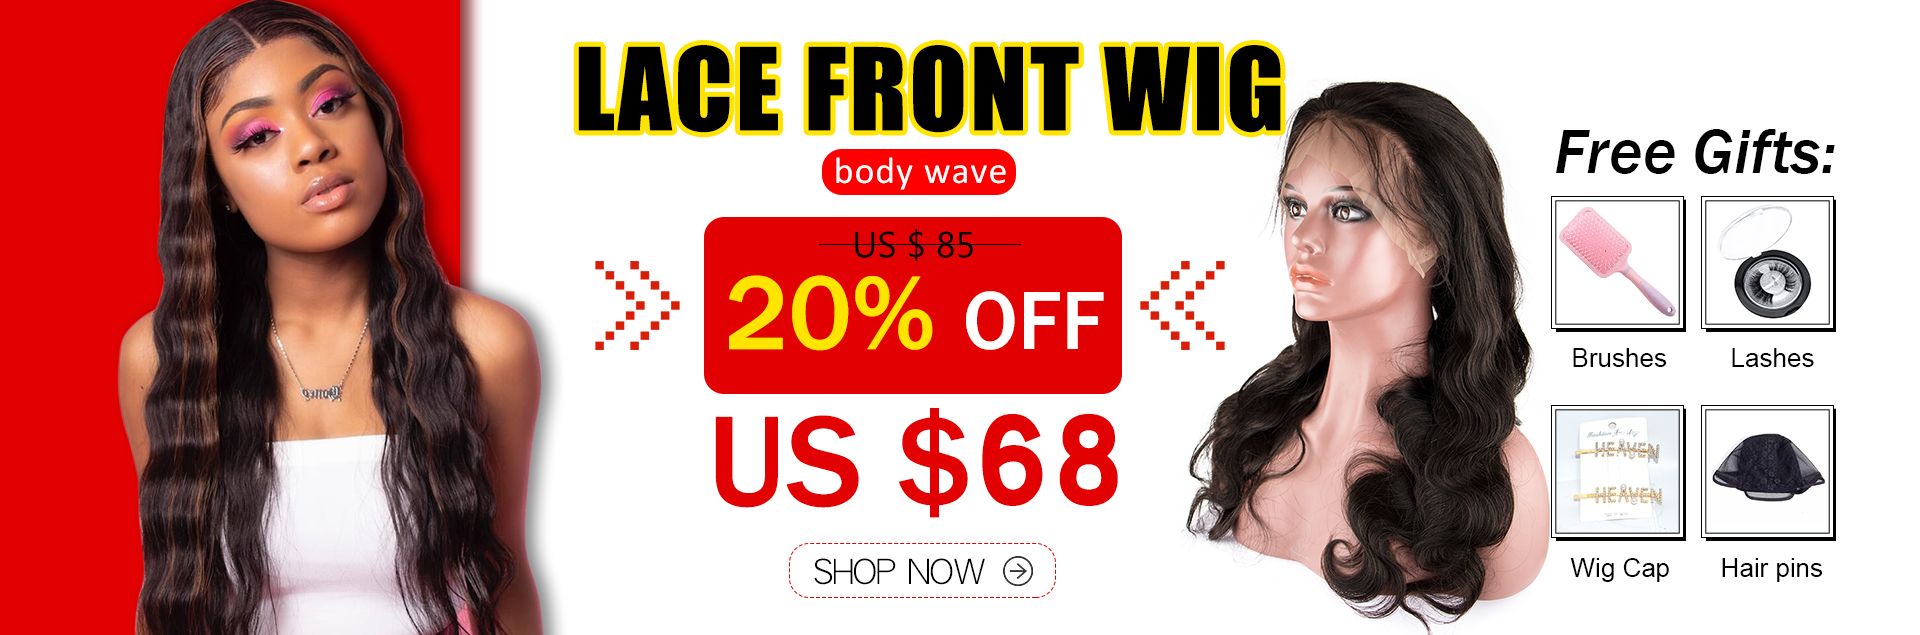 Body Wave Virgin Hair Lace Front Wig